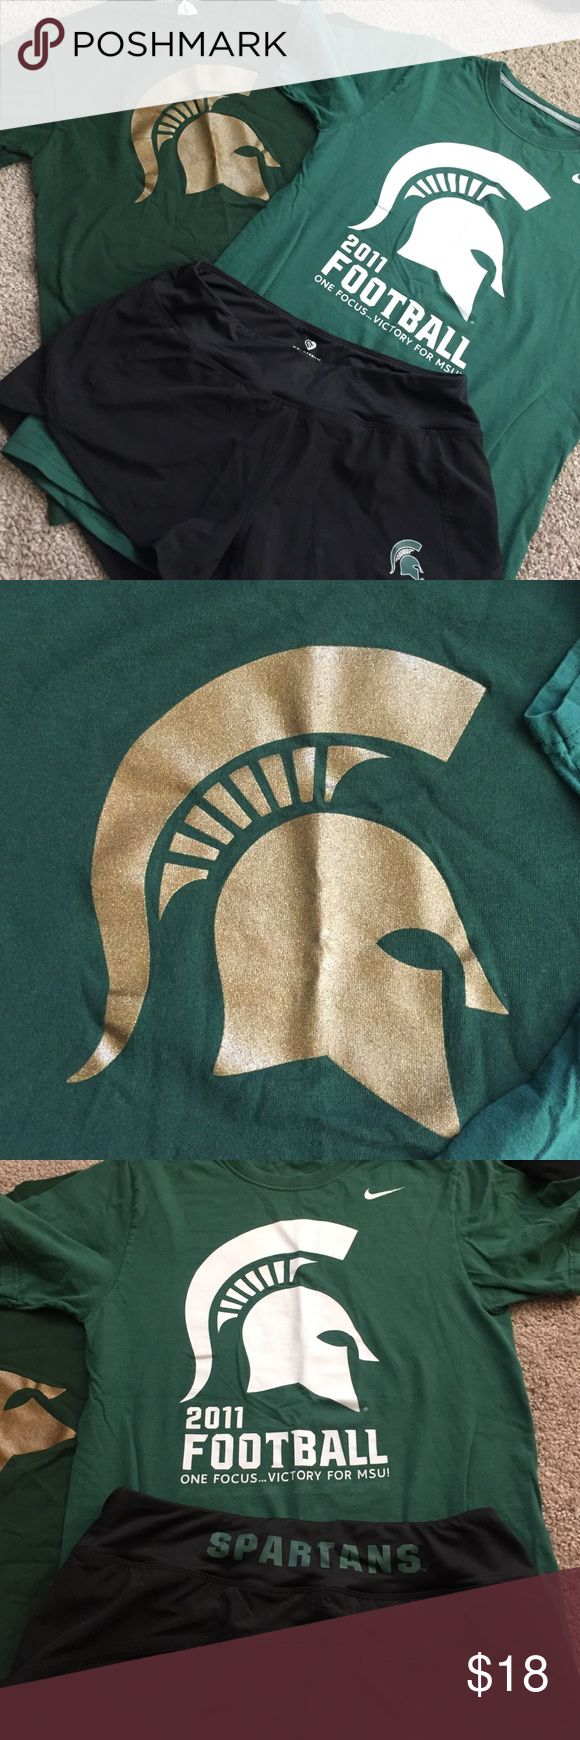 MSU bundle Michigan State University bundle. Two t shirts and a pair of shorts. Shirt with gold Spartan helmet is like new. Nike football shirt is in good used condition. Spartans shorts like new. Shirts are unisex small. Shorts are women's medium. Other MSU apparel in other posts. Tall striped socks with Spartan helmet logo included - they have been worn twice and have pilling on bottom of foot. Nike Tops Tees - Short Sleeve